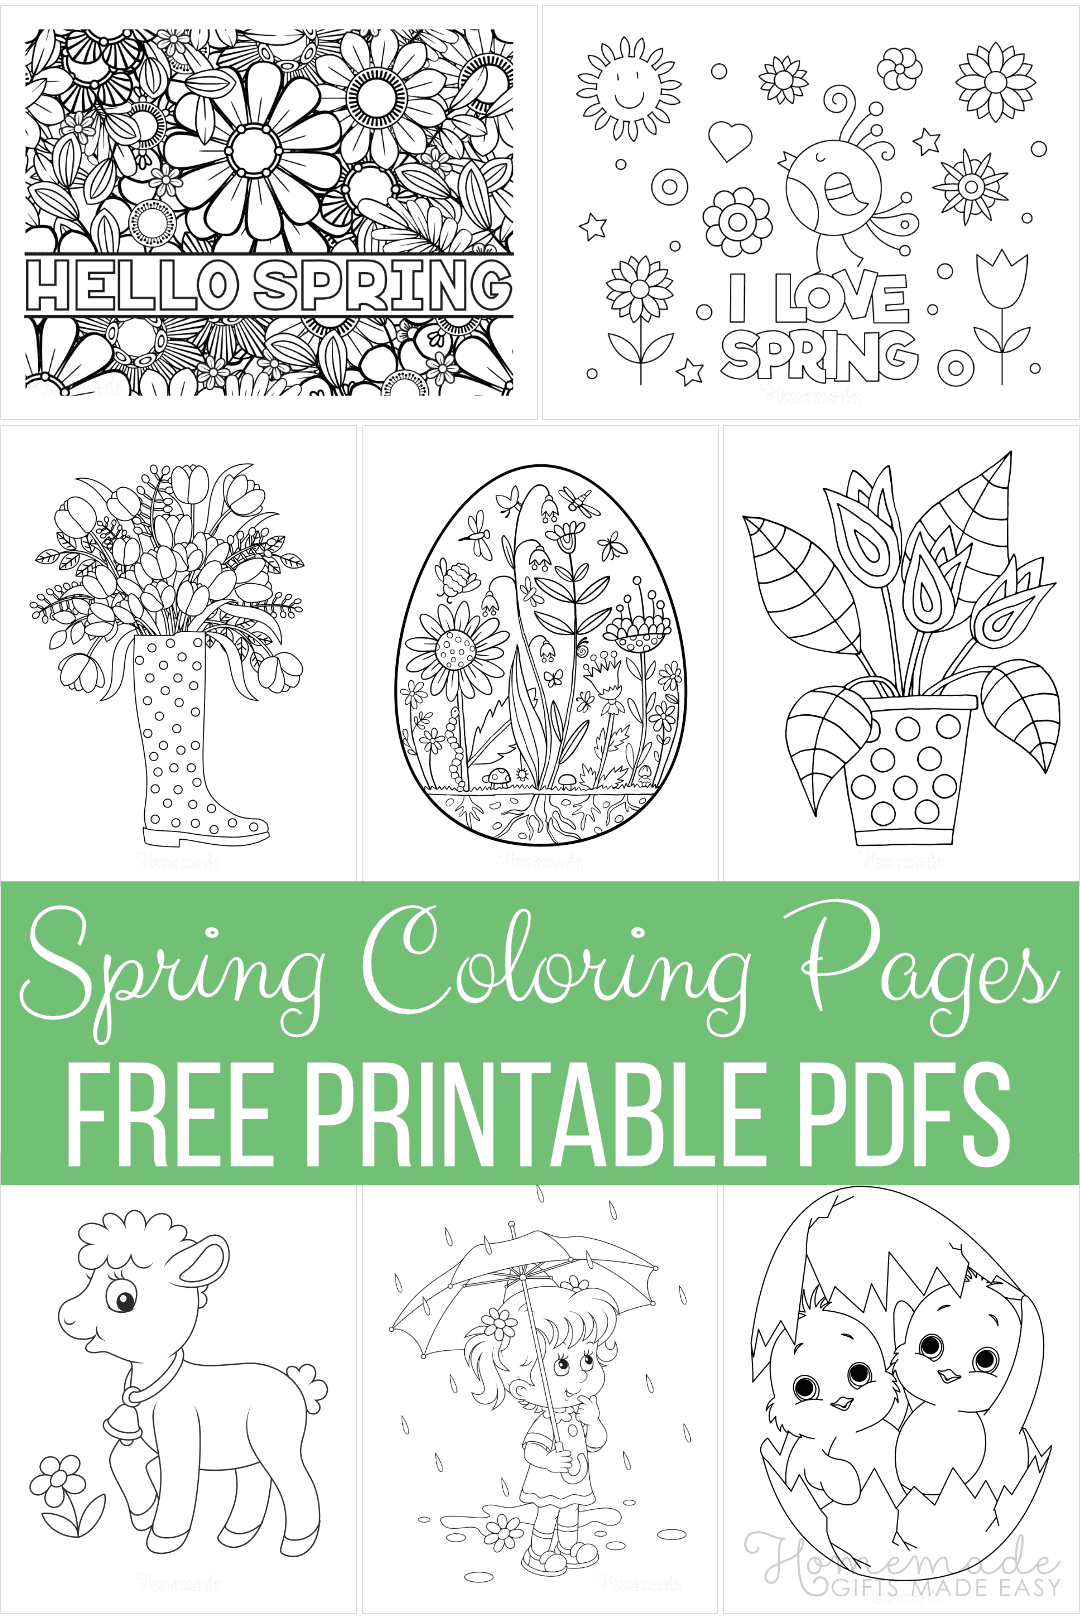 65 Spring Coloring Pages Free Printable Pdfs